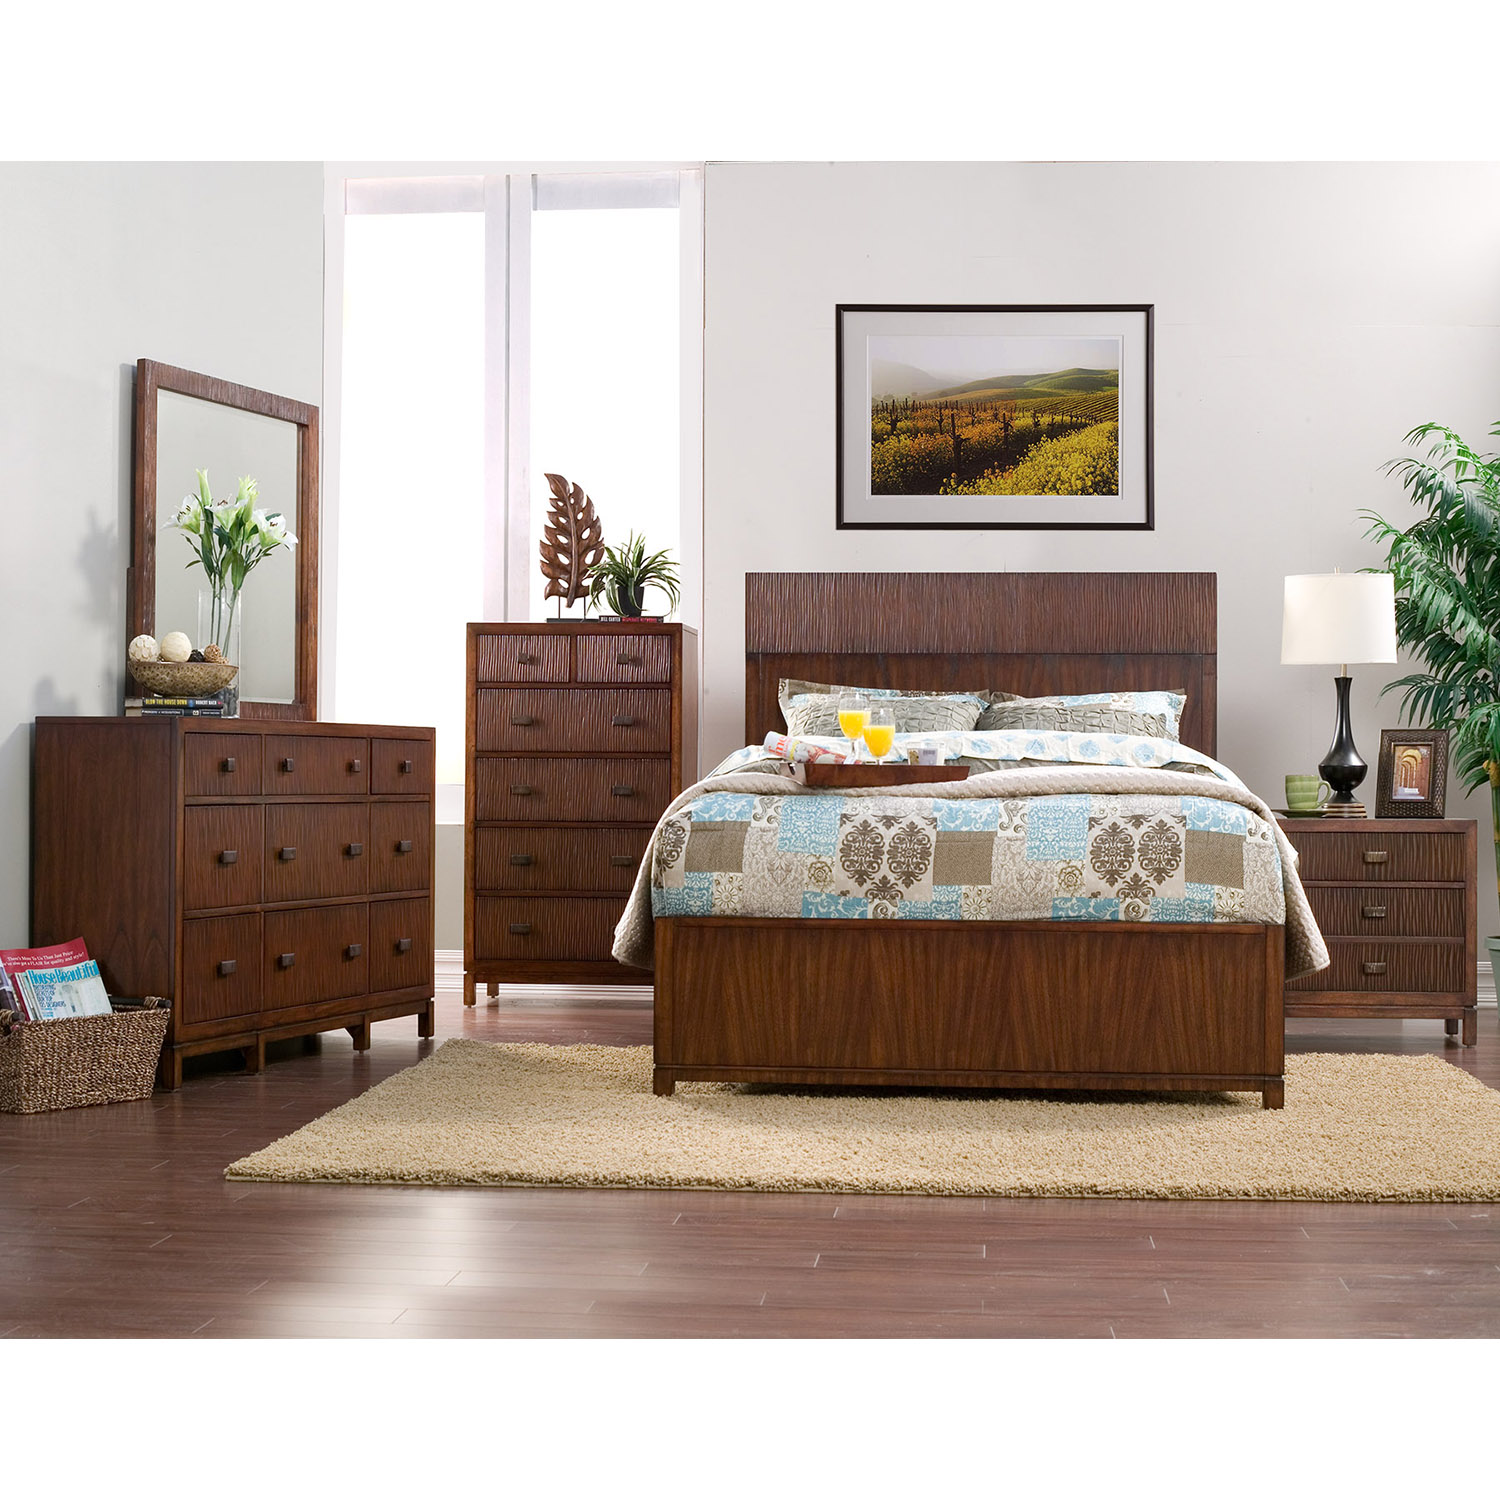 Loft 9 Drawers Dresser - Dark Walnut - ALP-ORI-711-03